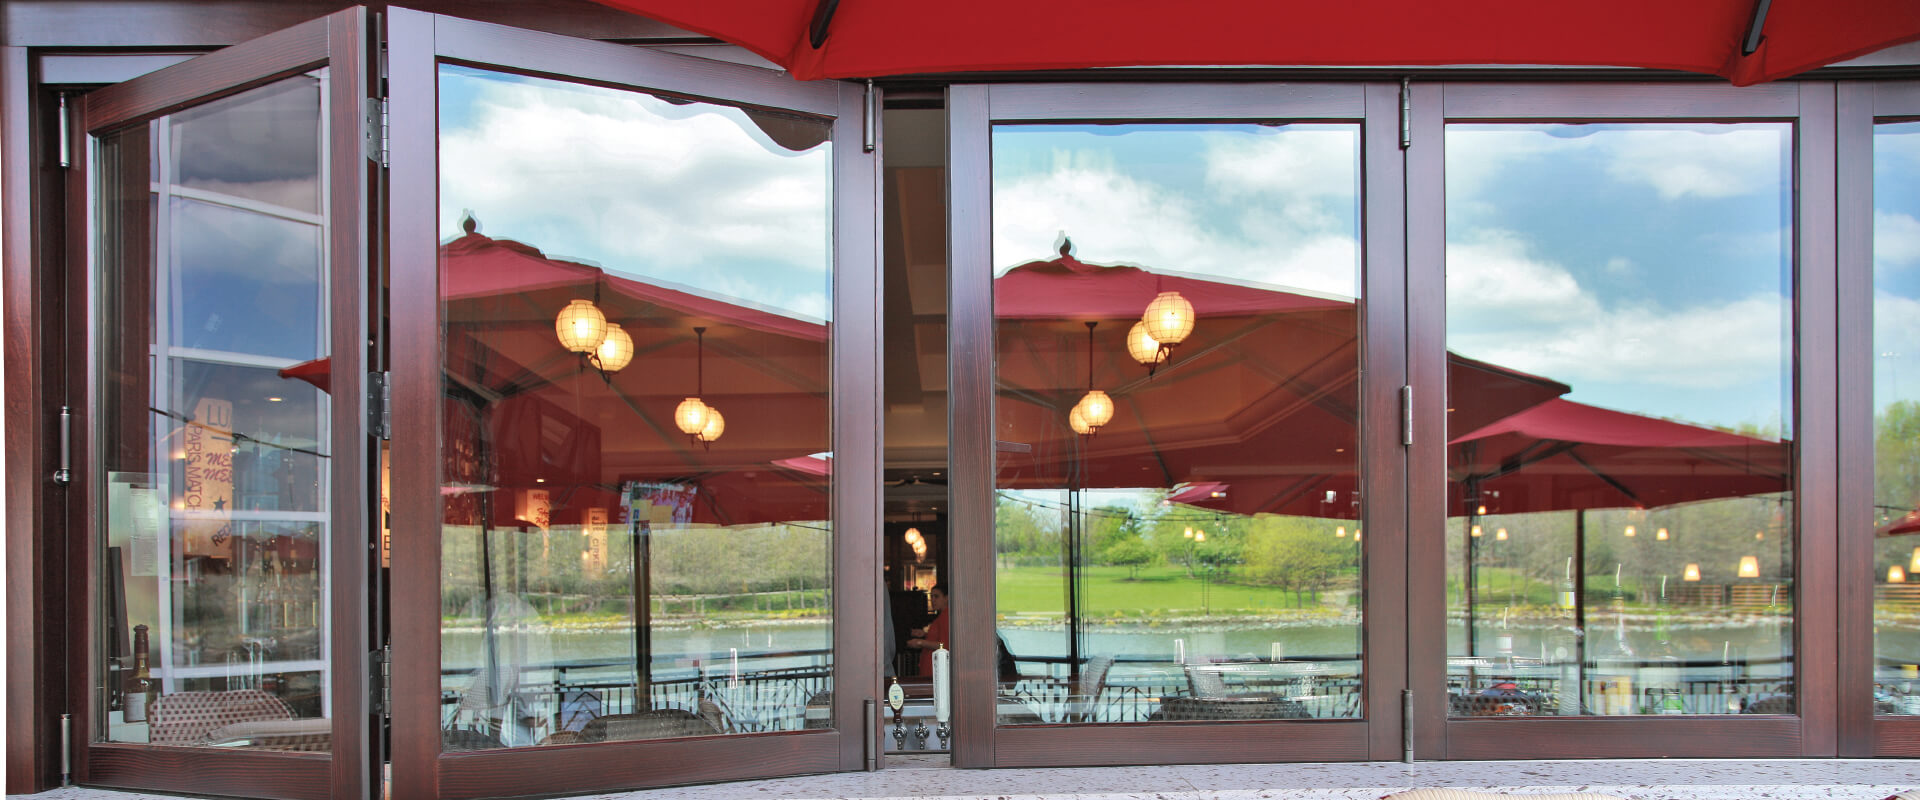 Heritage Series folding window with Mahogany wood exterior Cafe Deluxe street restaurant